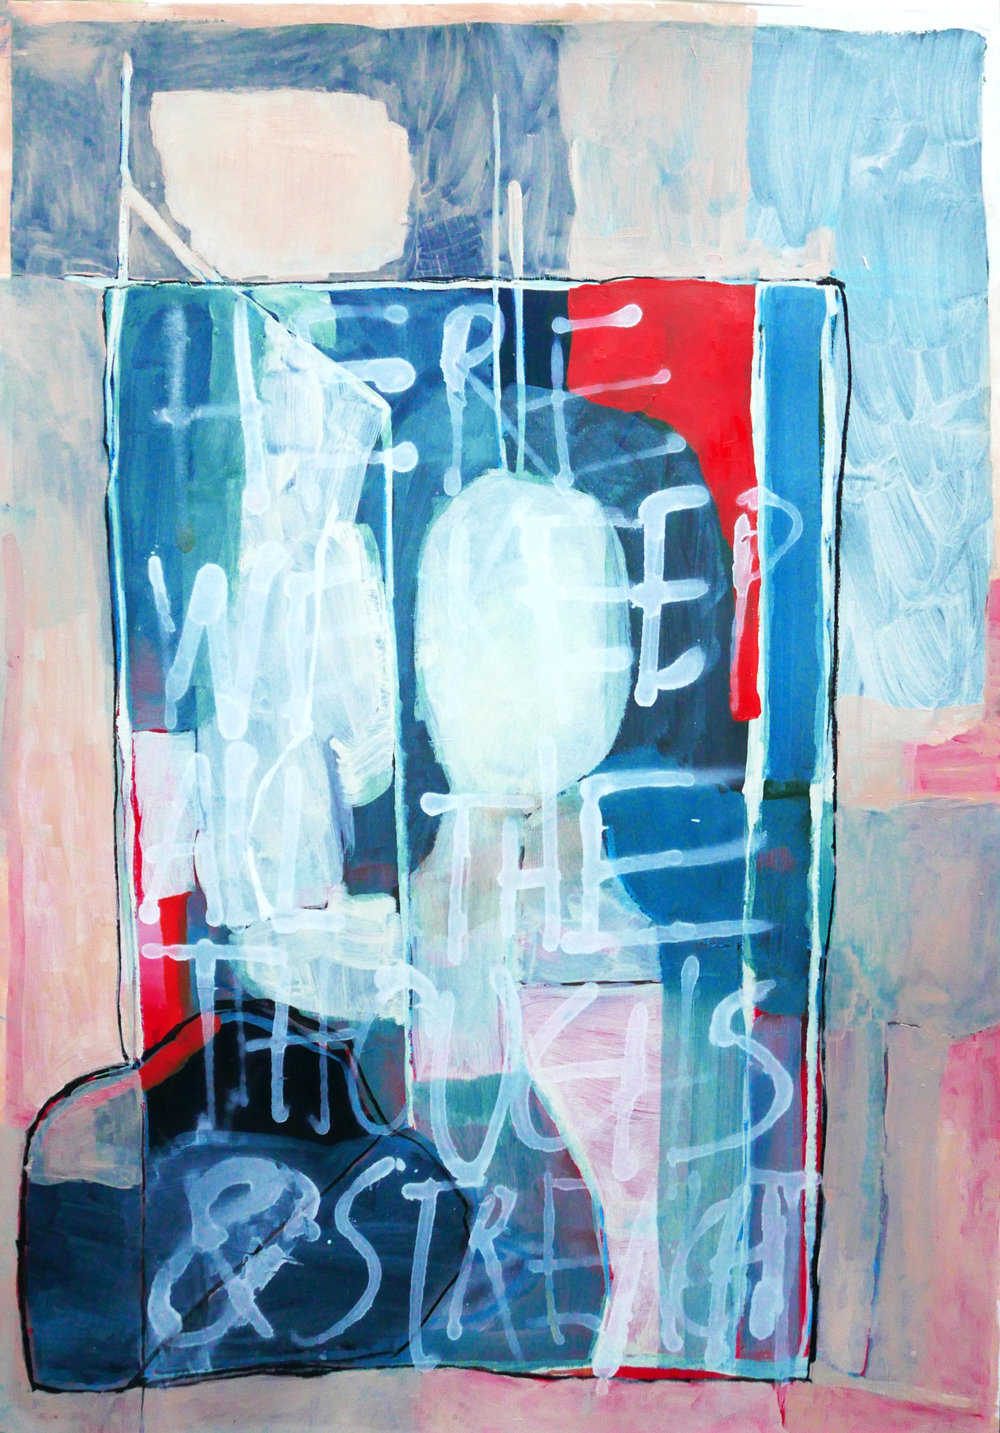 Her thoughts and strenght   oil, spray and dry pastel on paper / 100cm x 70cm